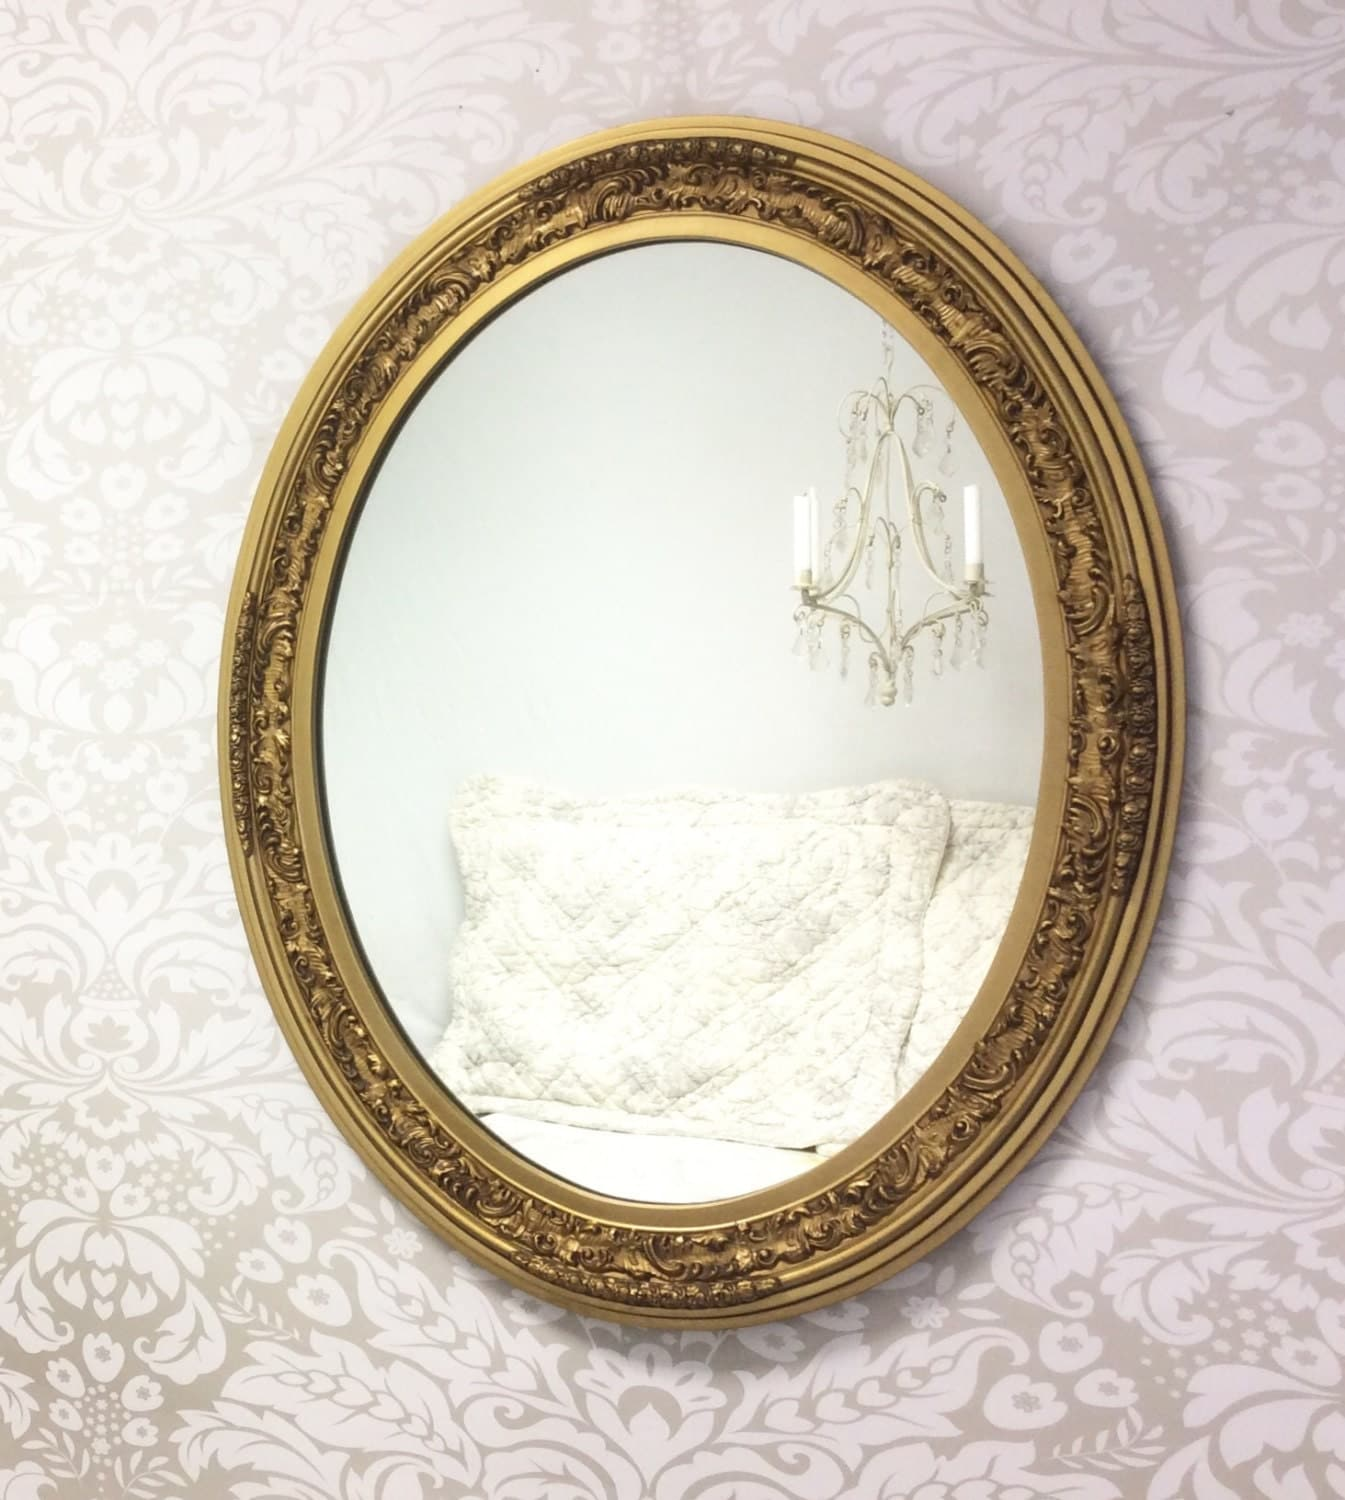 Decorative vintage mirror for sale large oval gold mirror for Big mirrors for sale